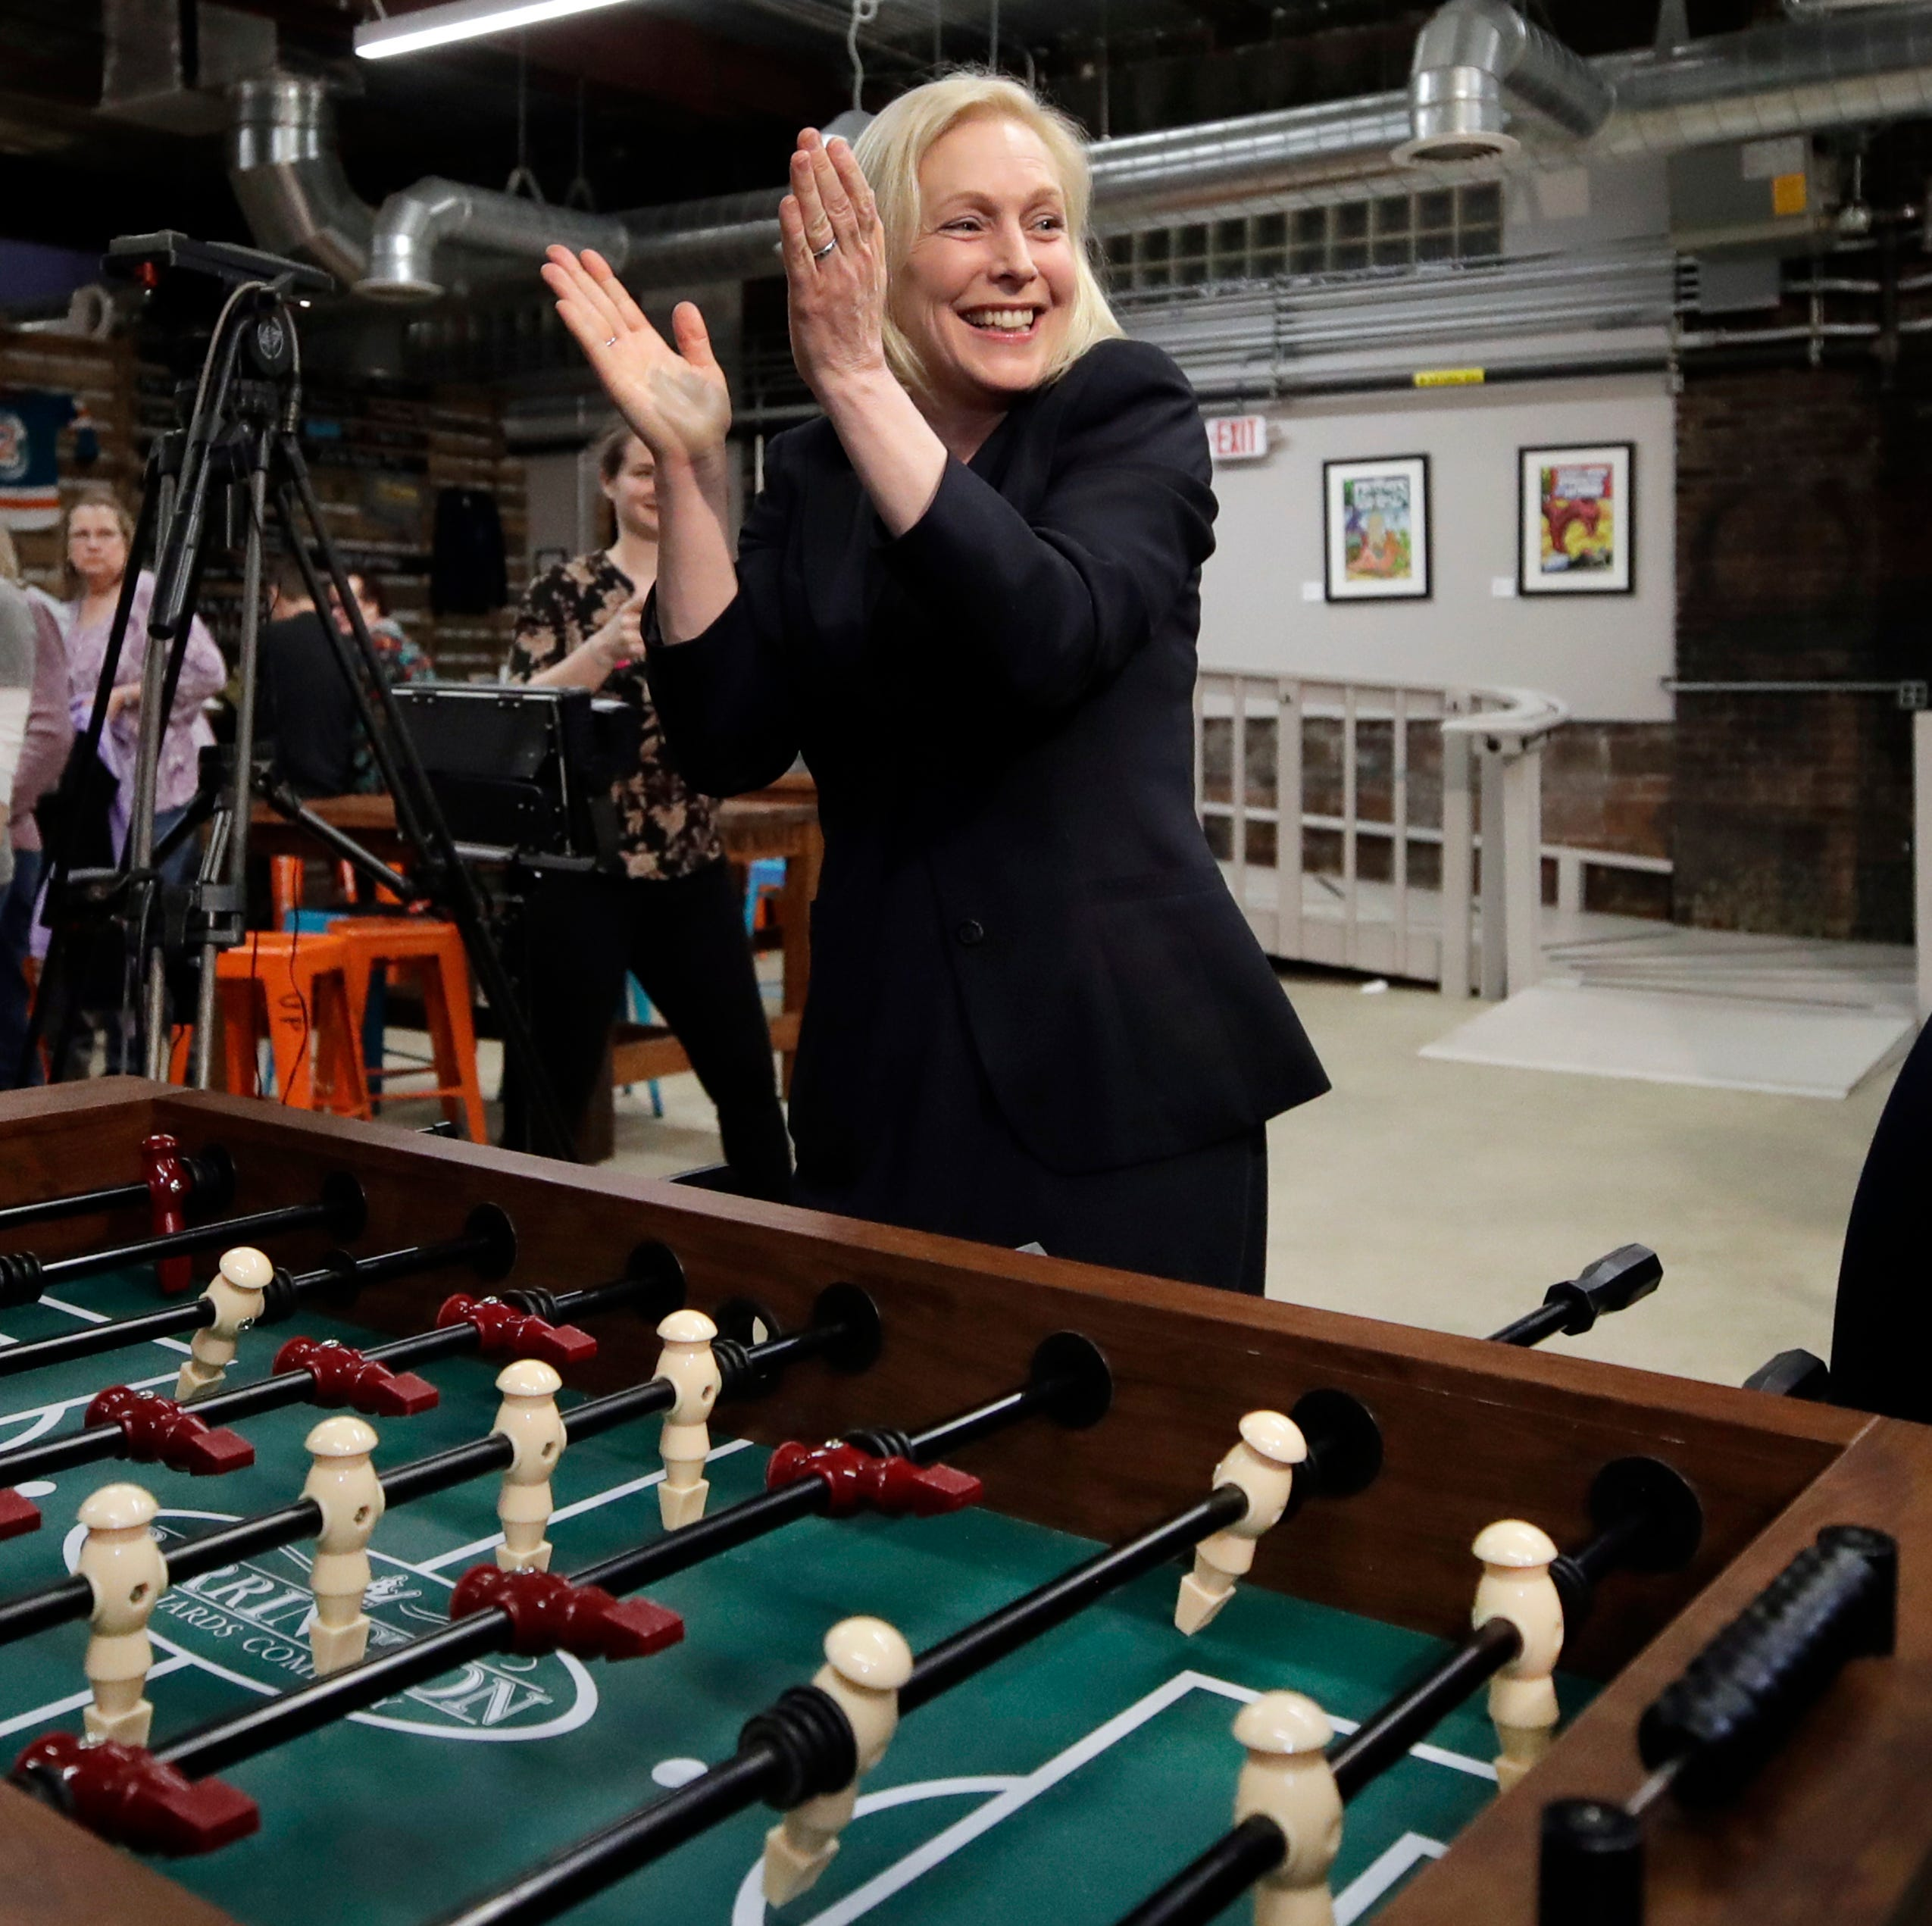 Democratic presidential candidate Sen. Kirsten Gillibrand, D-N.Y., celebrates her foosball victory at a campaign meet-and-greet, Friday, March 15, 2019, at To Share Brewing in Manchester, N.H.